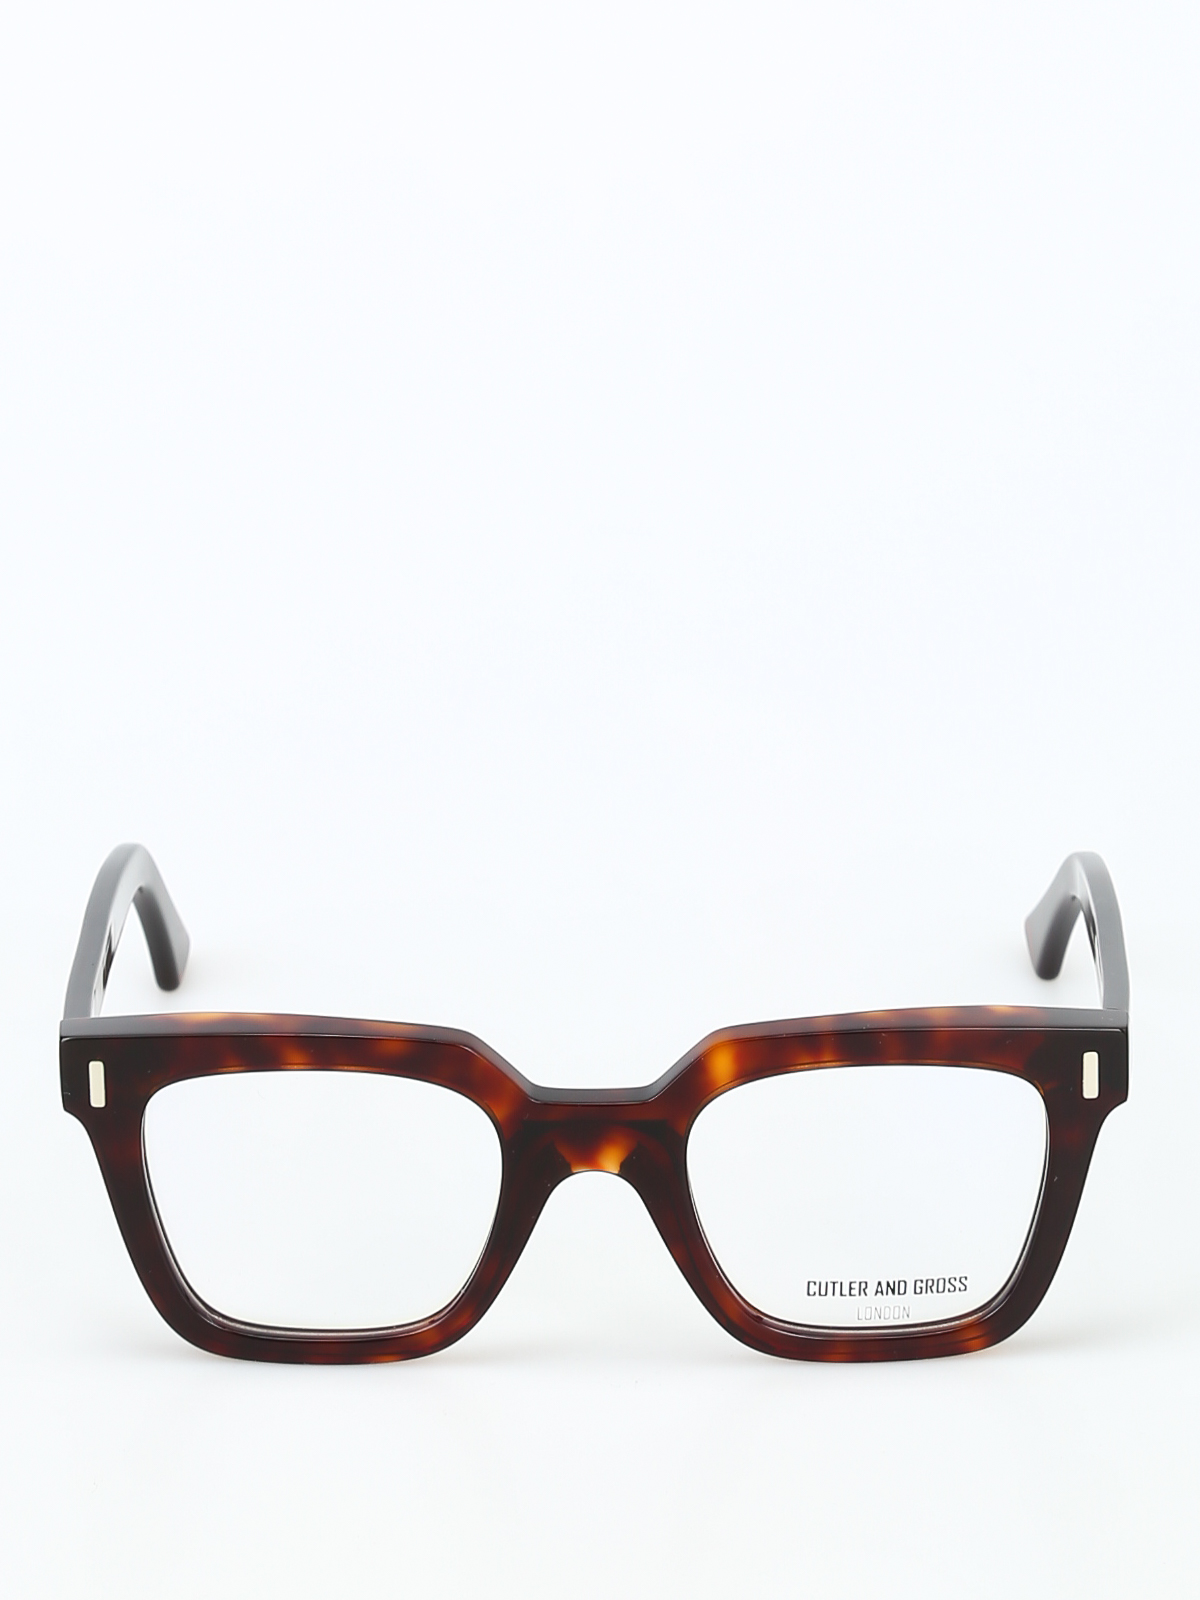 be1edef3c896 iKRIX CUTLER AND GROSS  Glasses - Super thick faded frame squared lens  glasses